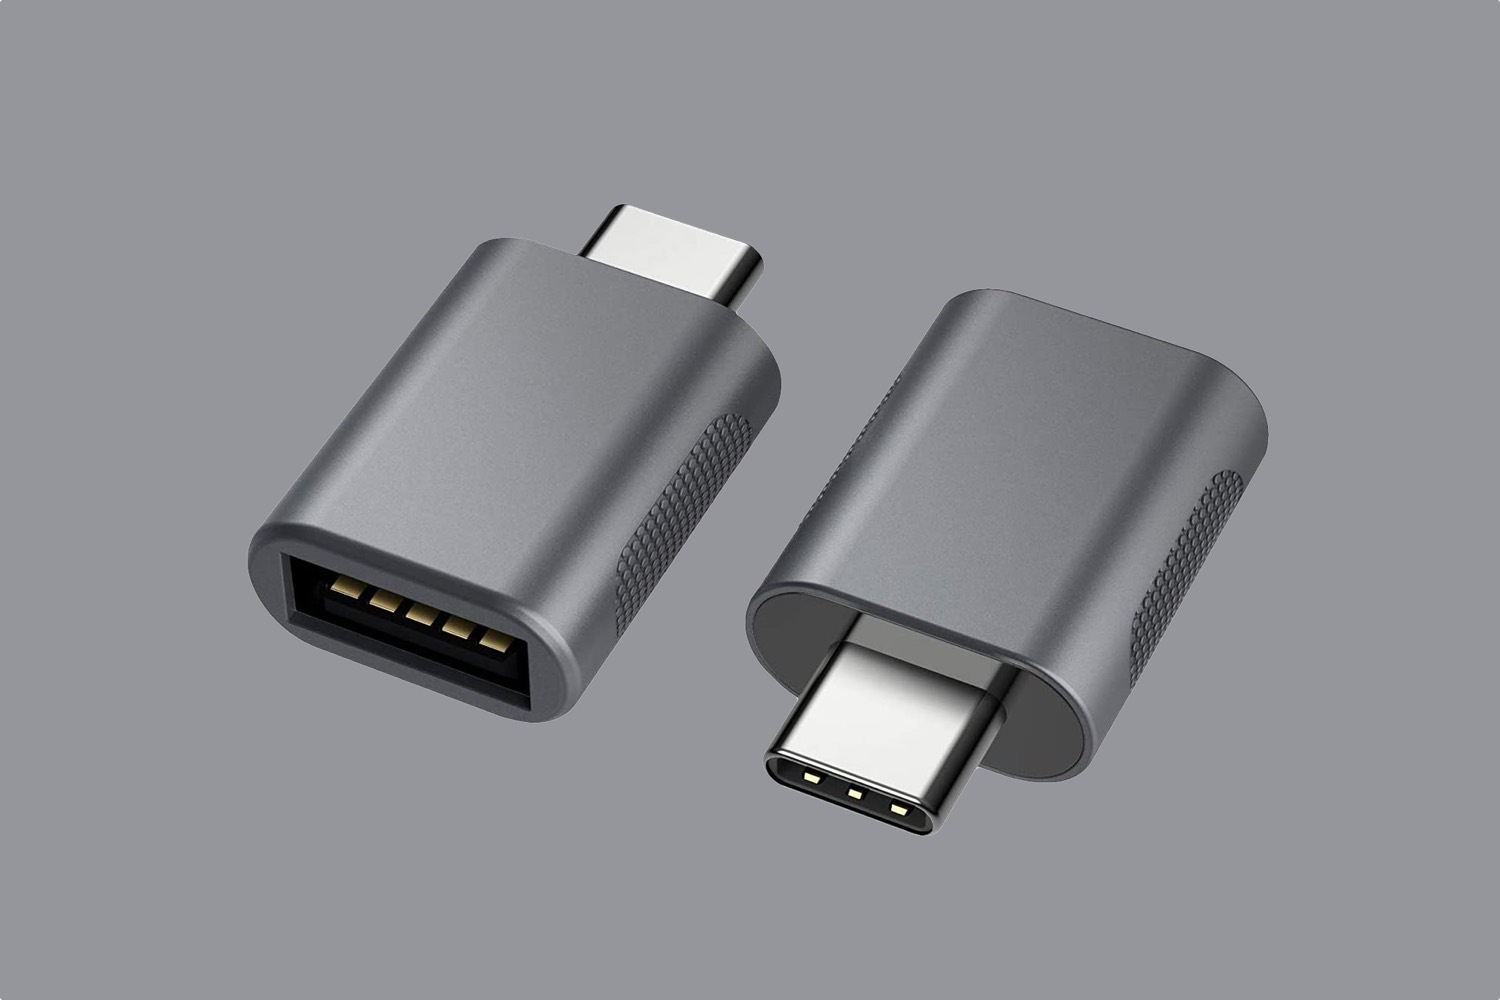 nonda USB C to USB Adapter(2 Pack)